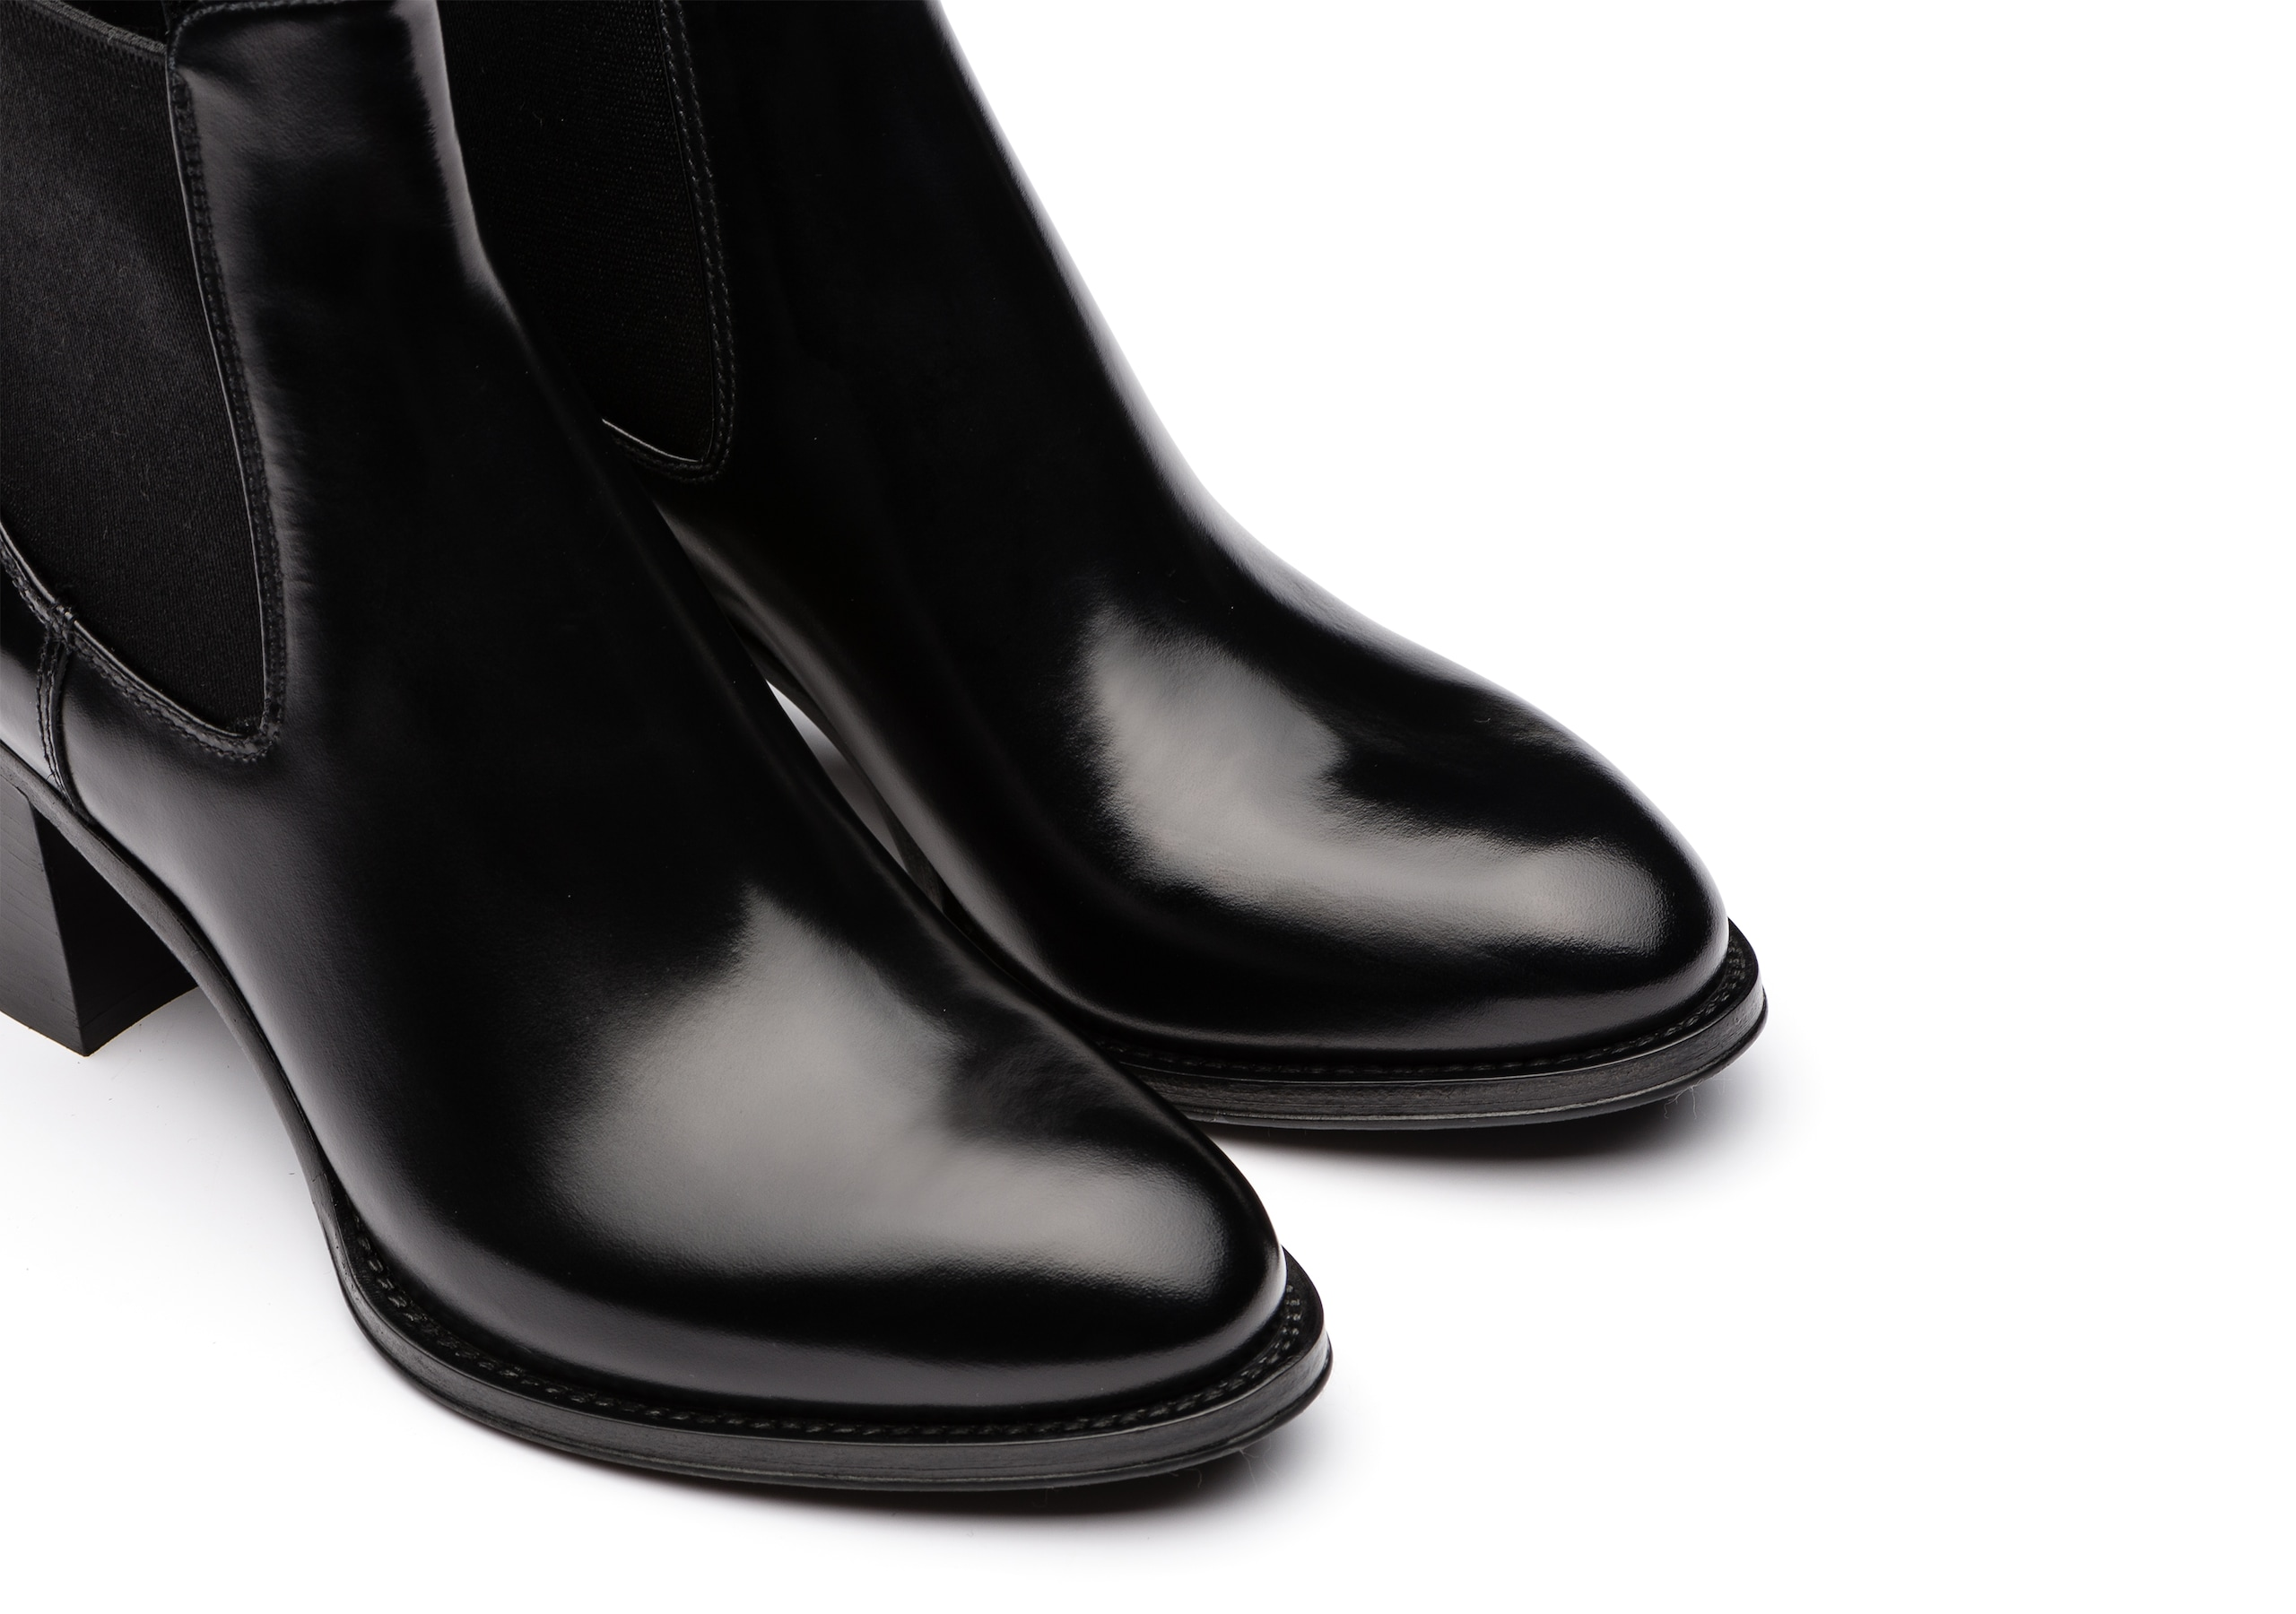 Shirley 55 Church's Polished Fumè Heeled Boot Black